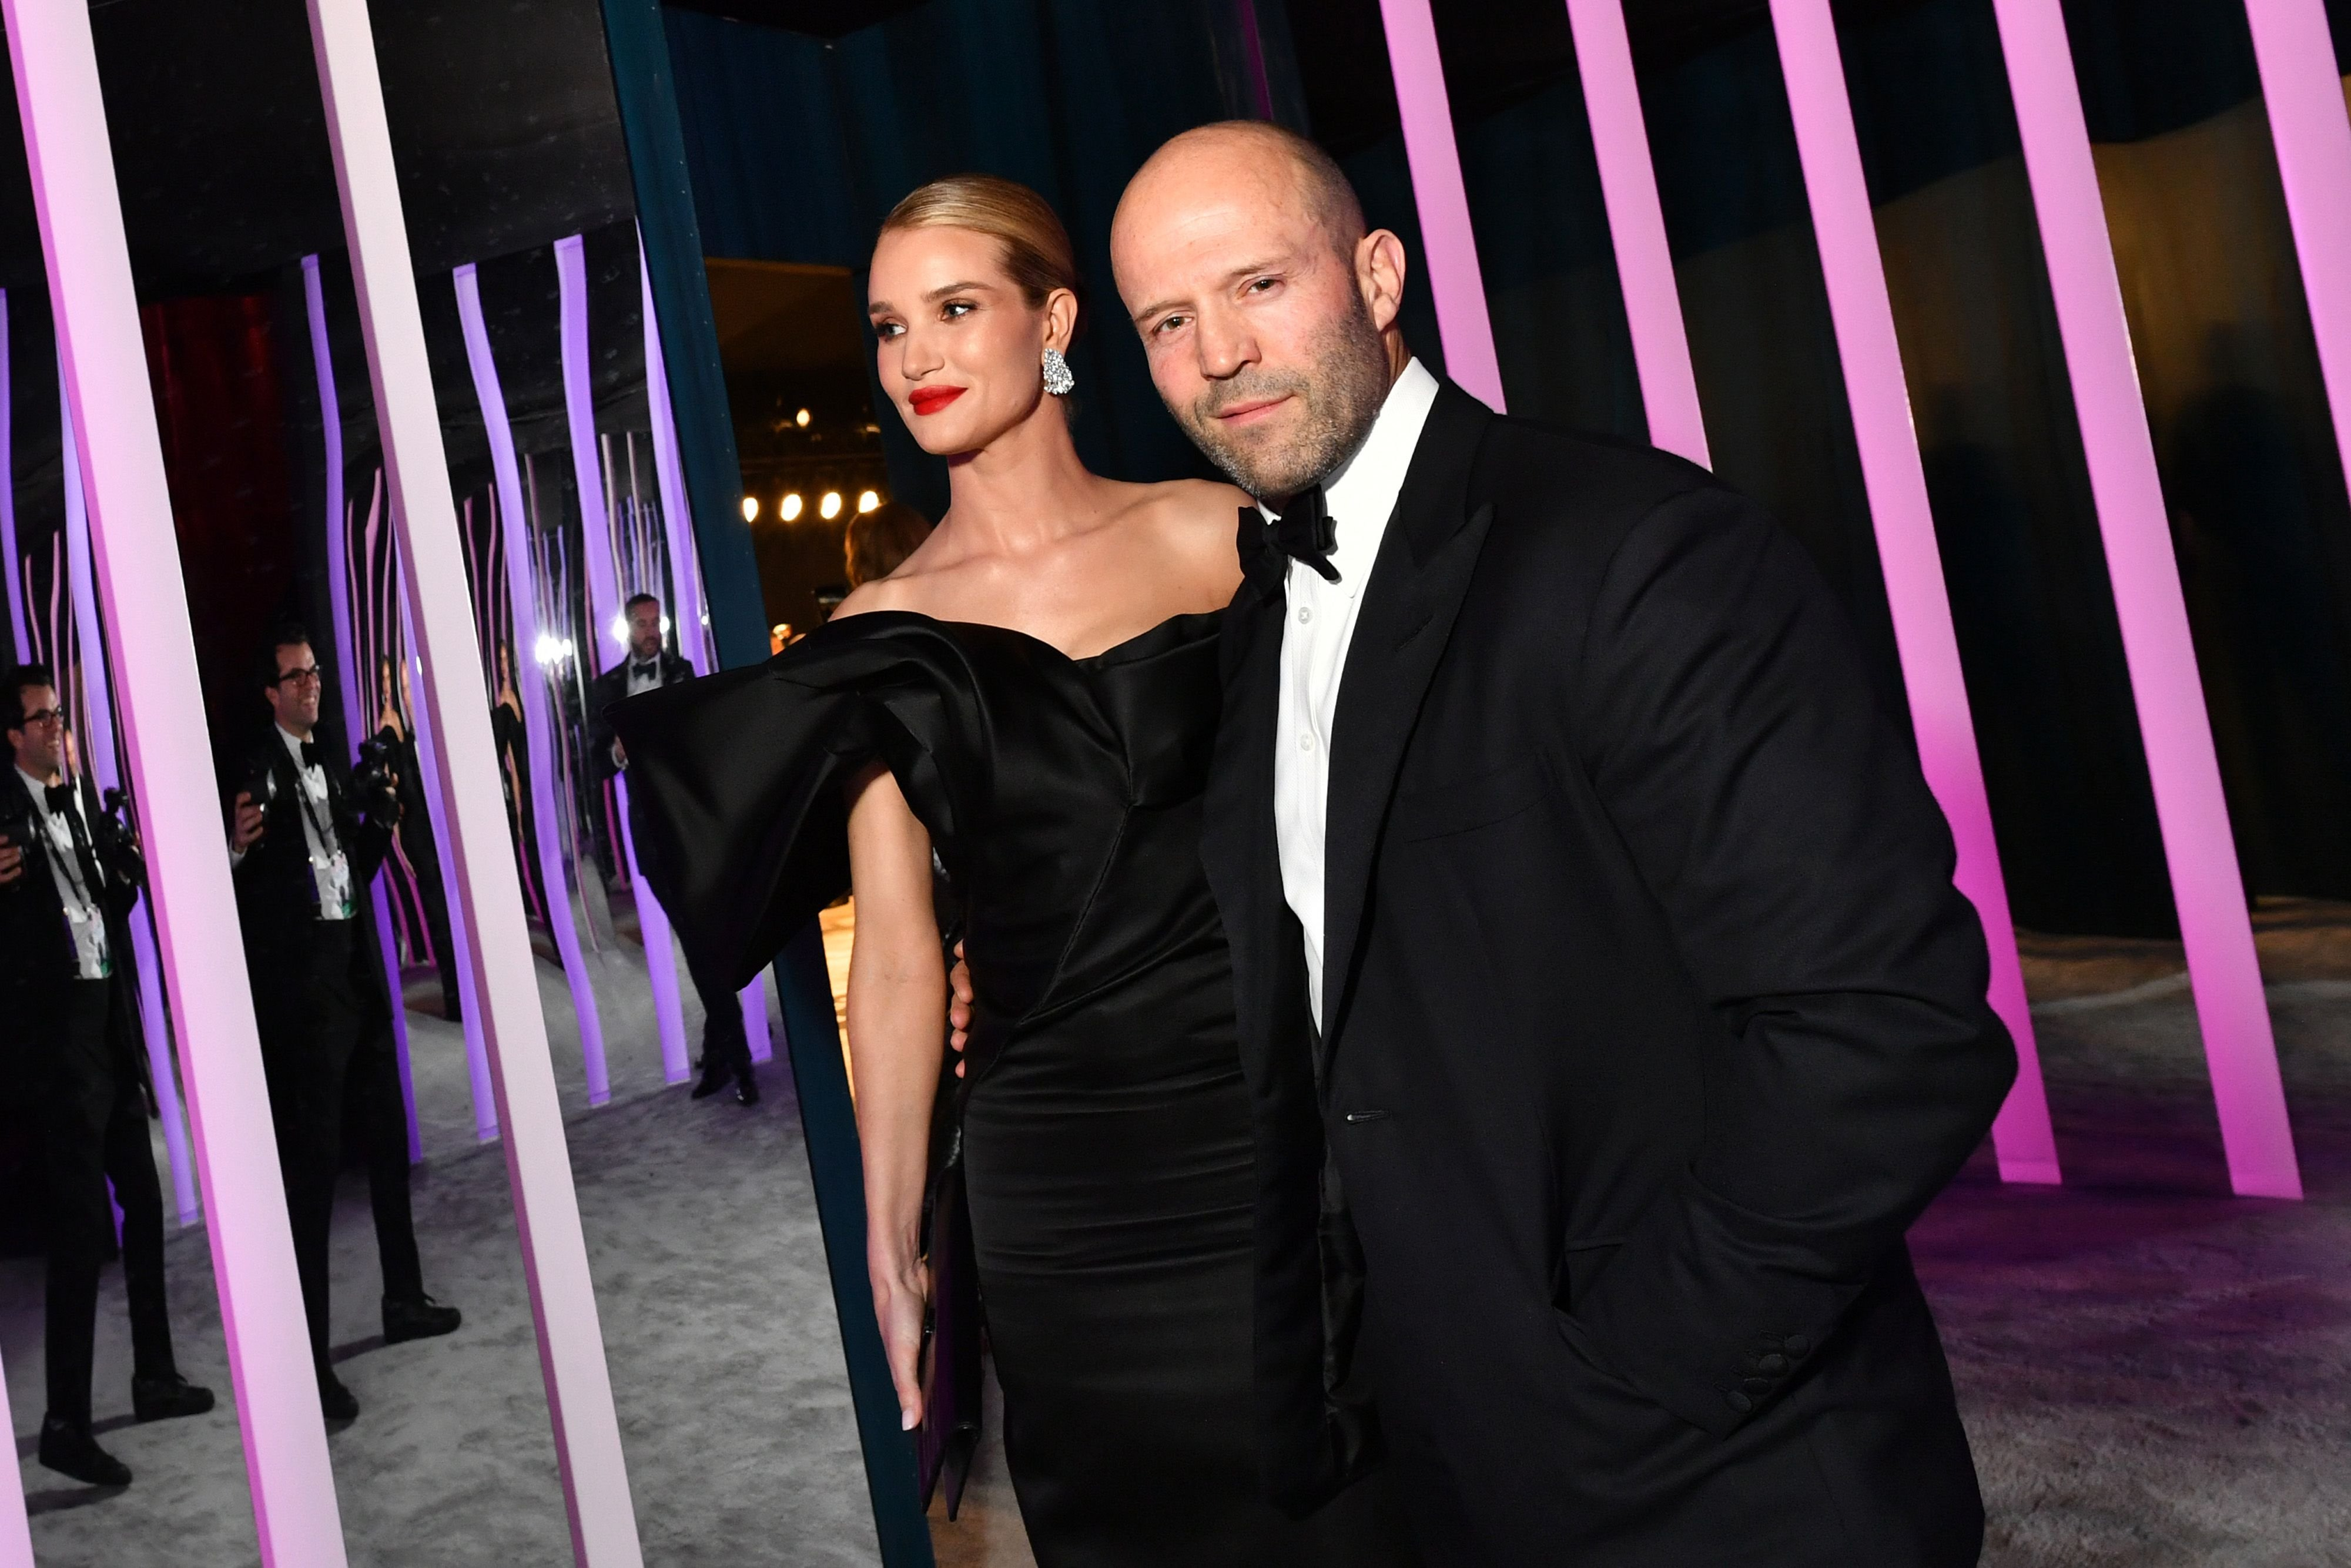 Rosie Huntington-Whiteley and Jason Statham at the 2020 Vanity Fair Oscar Party in February 2020 in Beverly Hills, California | Source: Getty Images